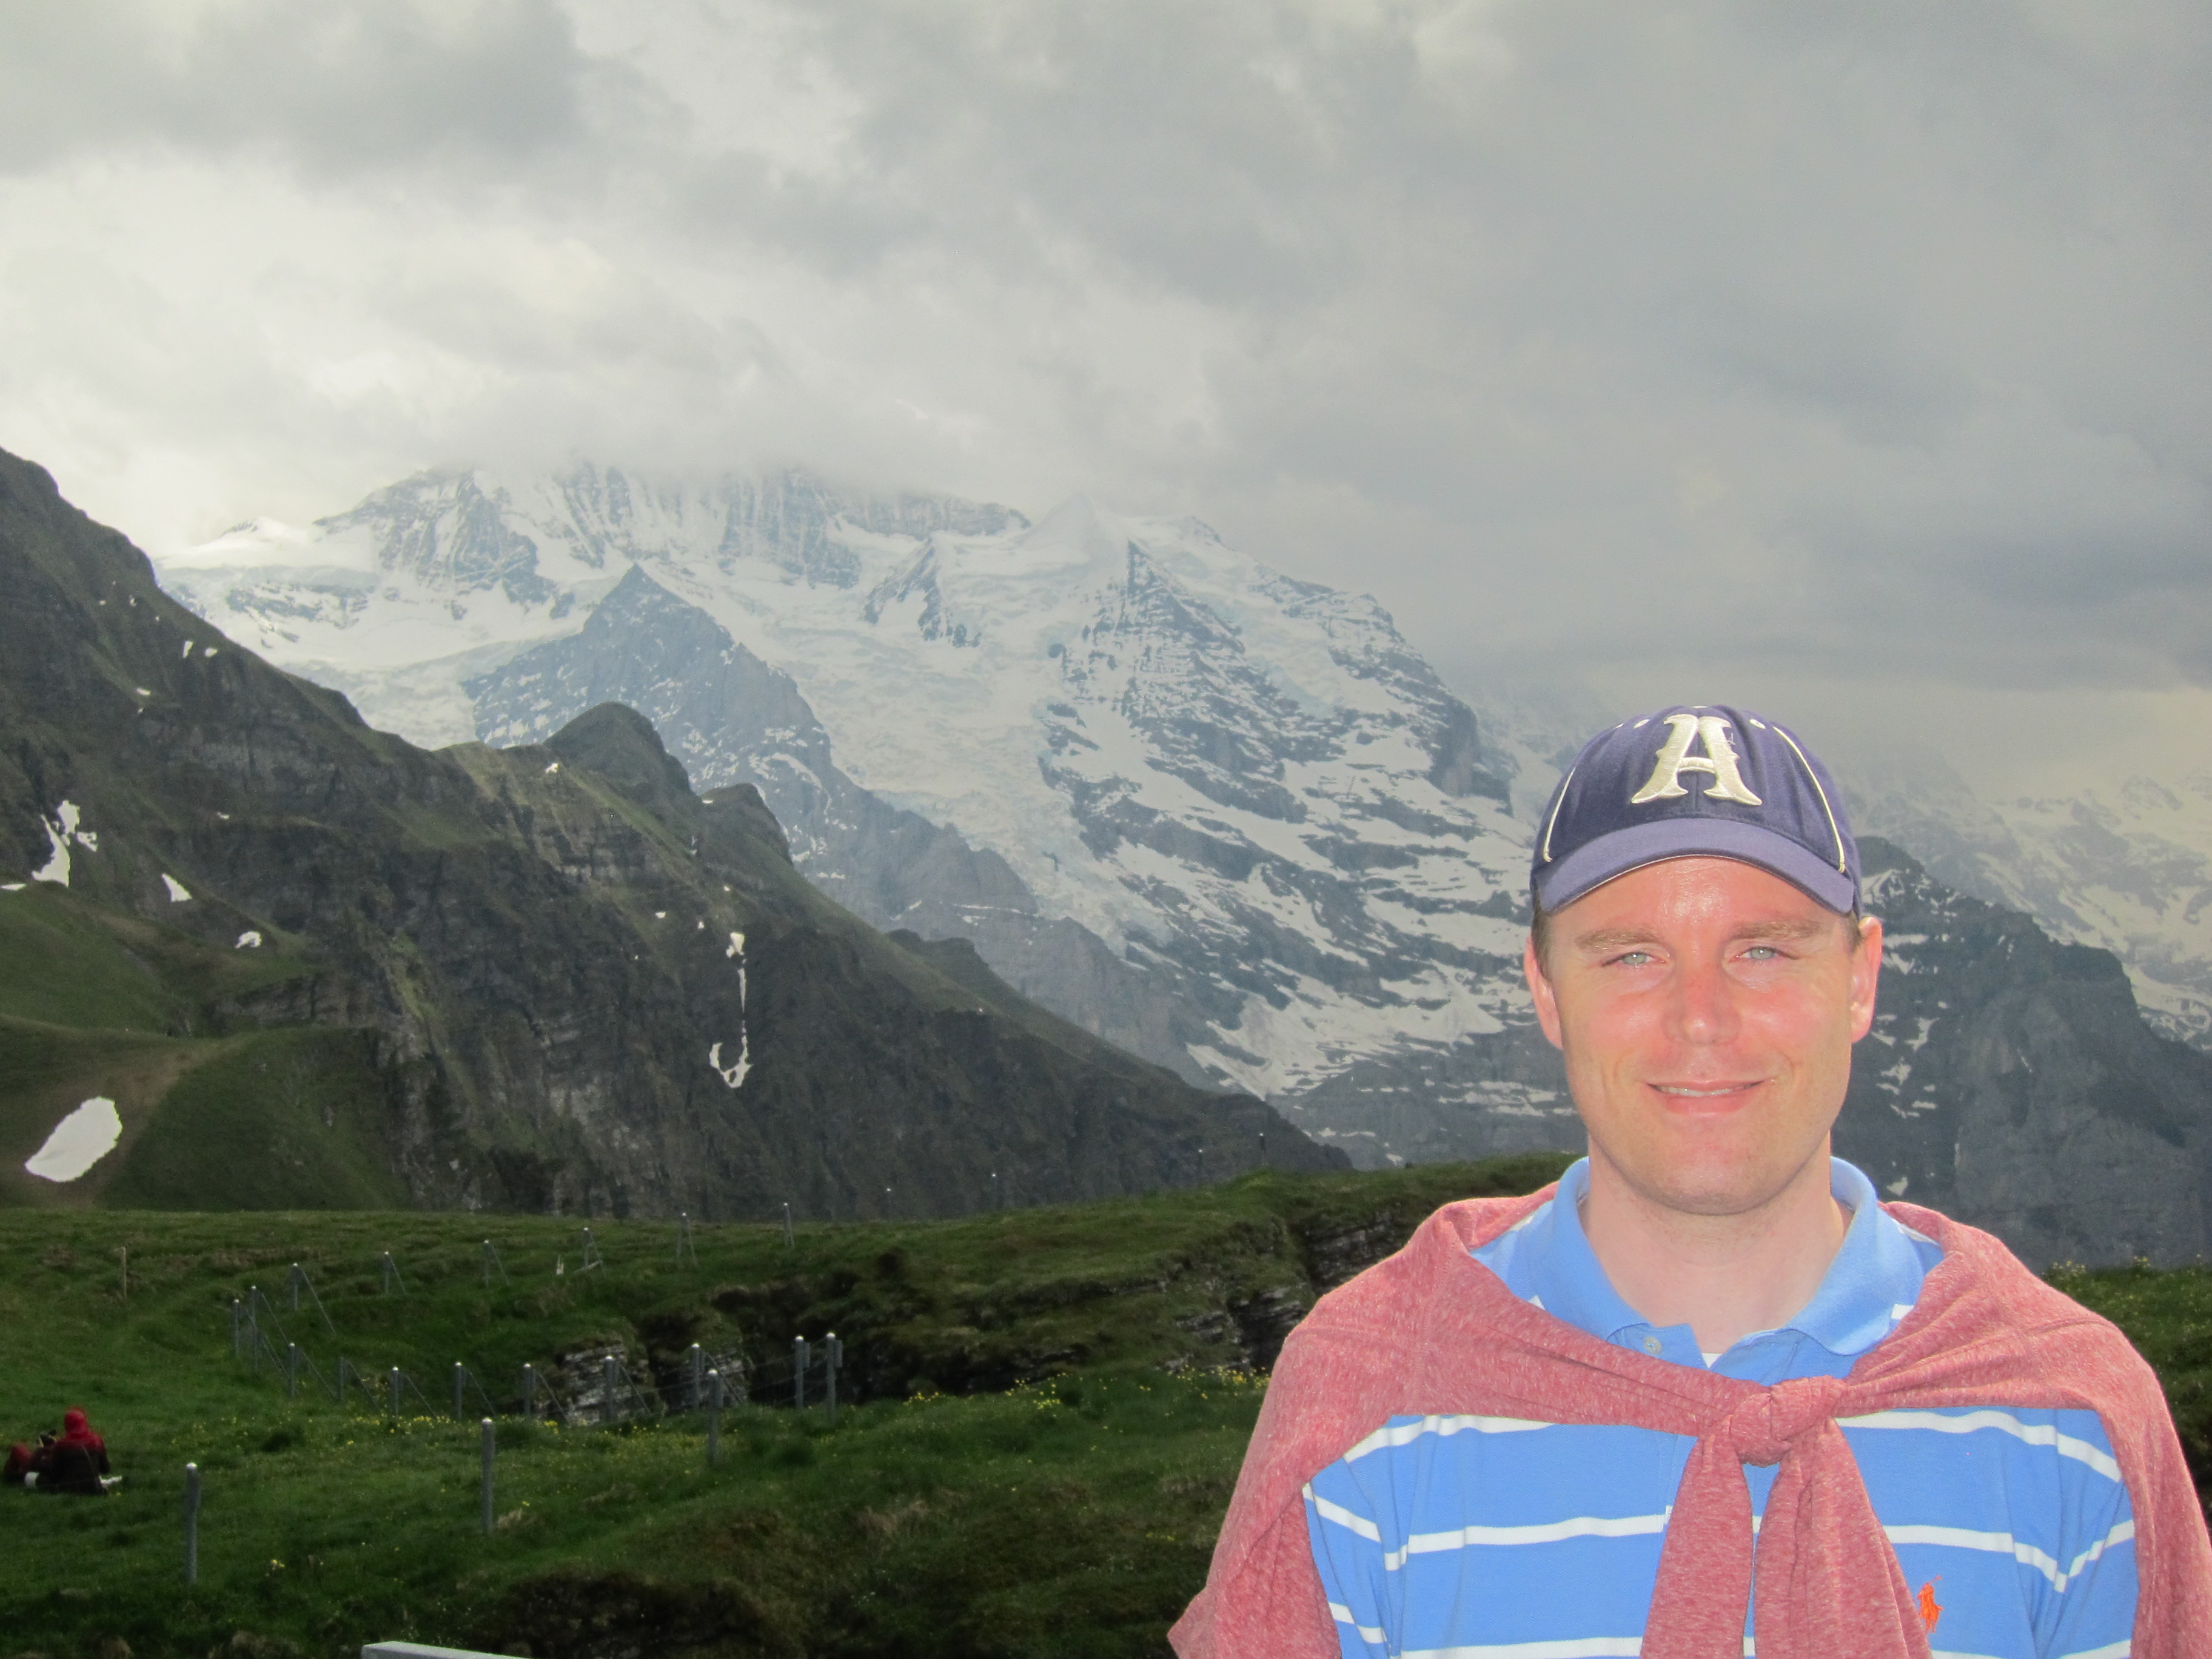 Enjoying a hike in the Swiss Alps. Lauterbrunnen to Mannlichen via Wengen.